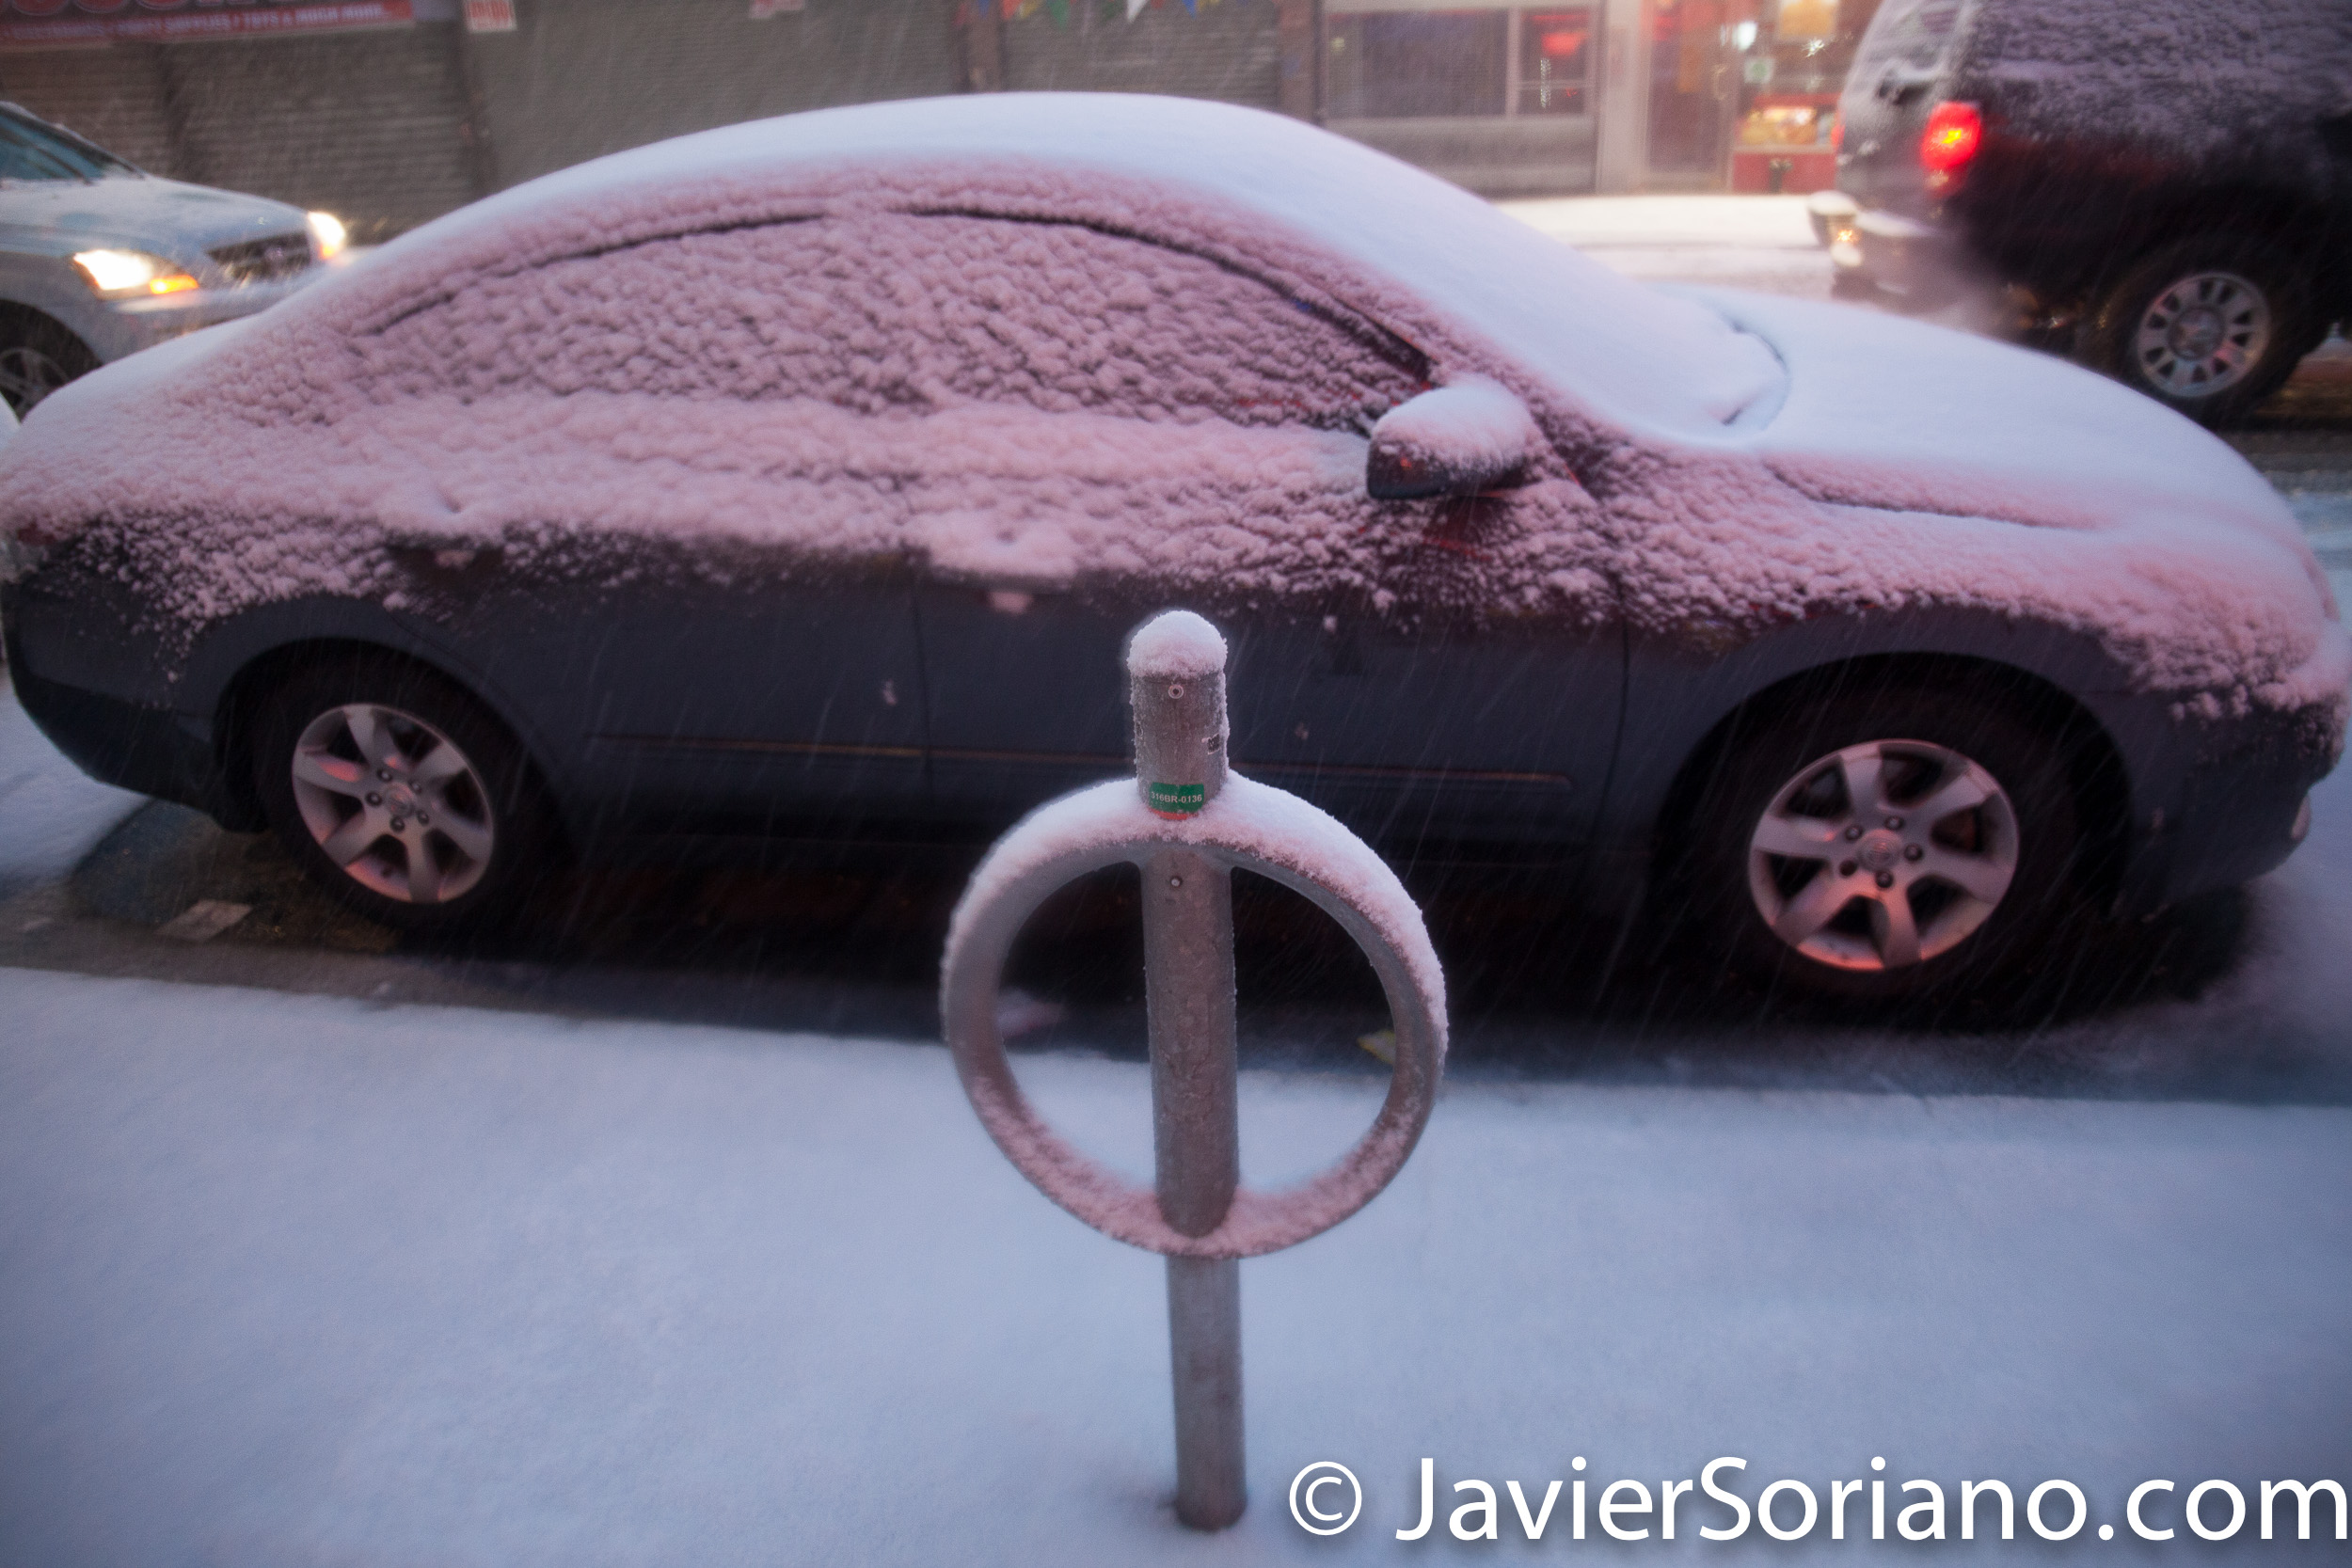 2/9/2017 NYC - Winter storm Niko in Brooklyn. Photo by Javier Soriano/www.JavierSoriano.com